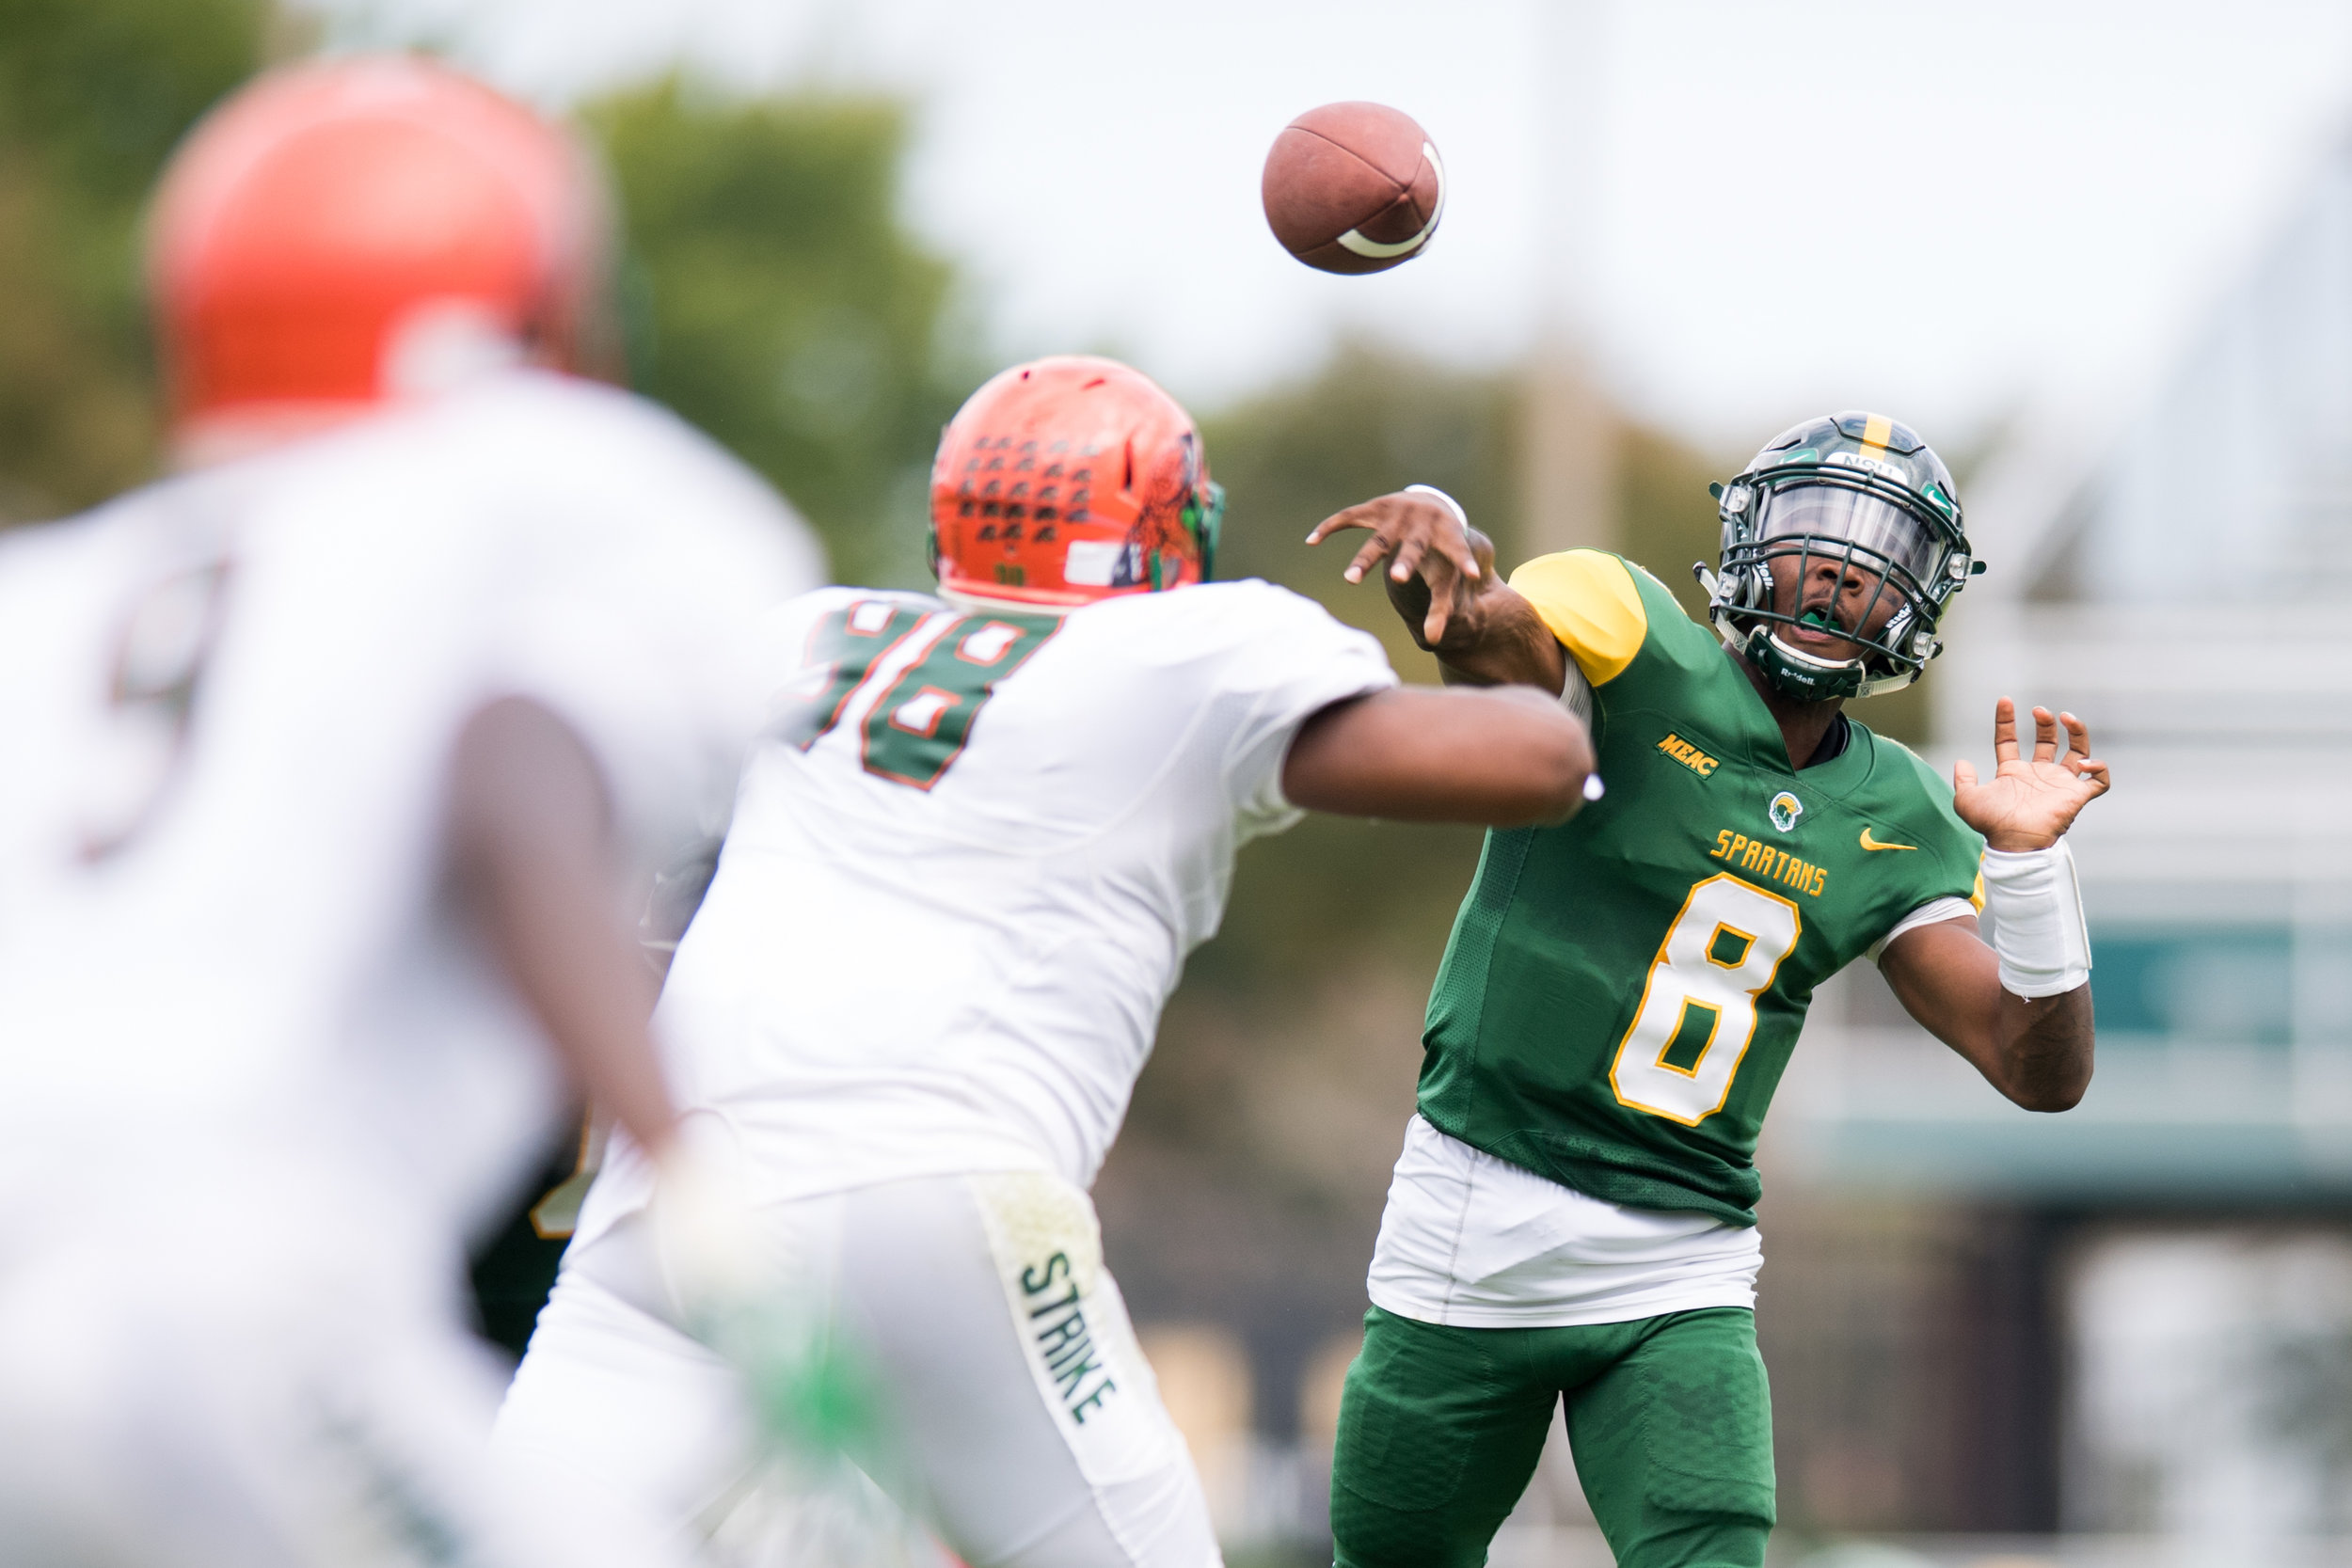 Norfolk State Spartans quarterback Juwan Carter (8) throws a pass for an interception against the Florida A&M Rattlers during the Saturday, October 7th 2017 game held at Dick Price Stadium in Norfolk, Virginia. Score is tied 14-14 at the half.